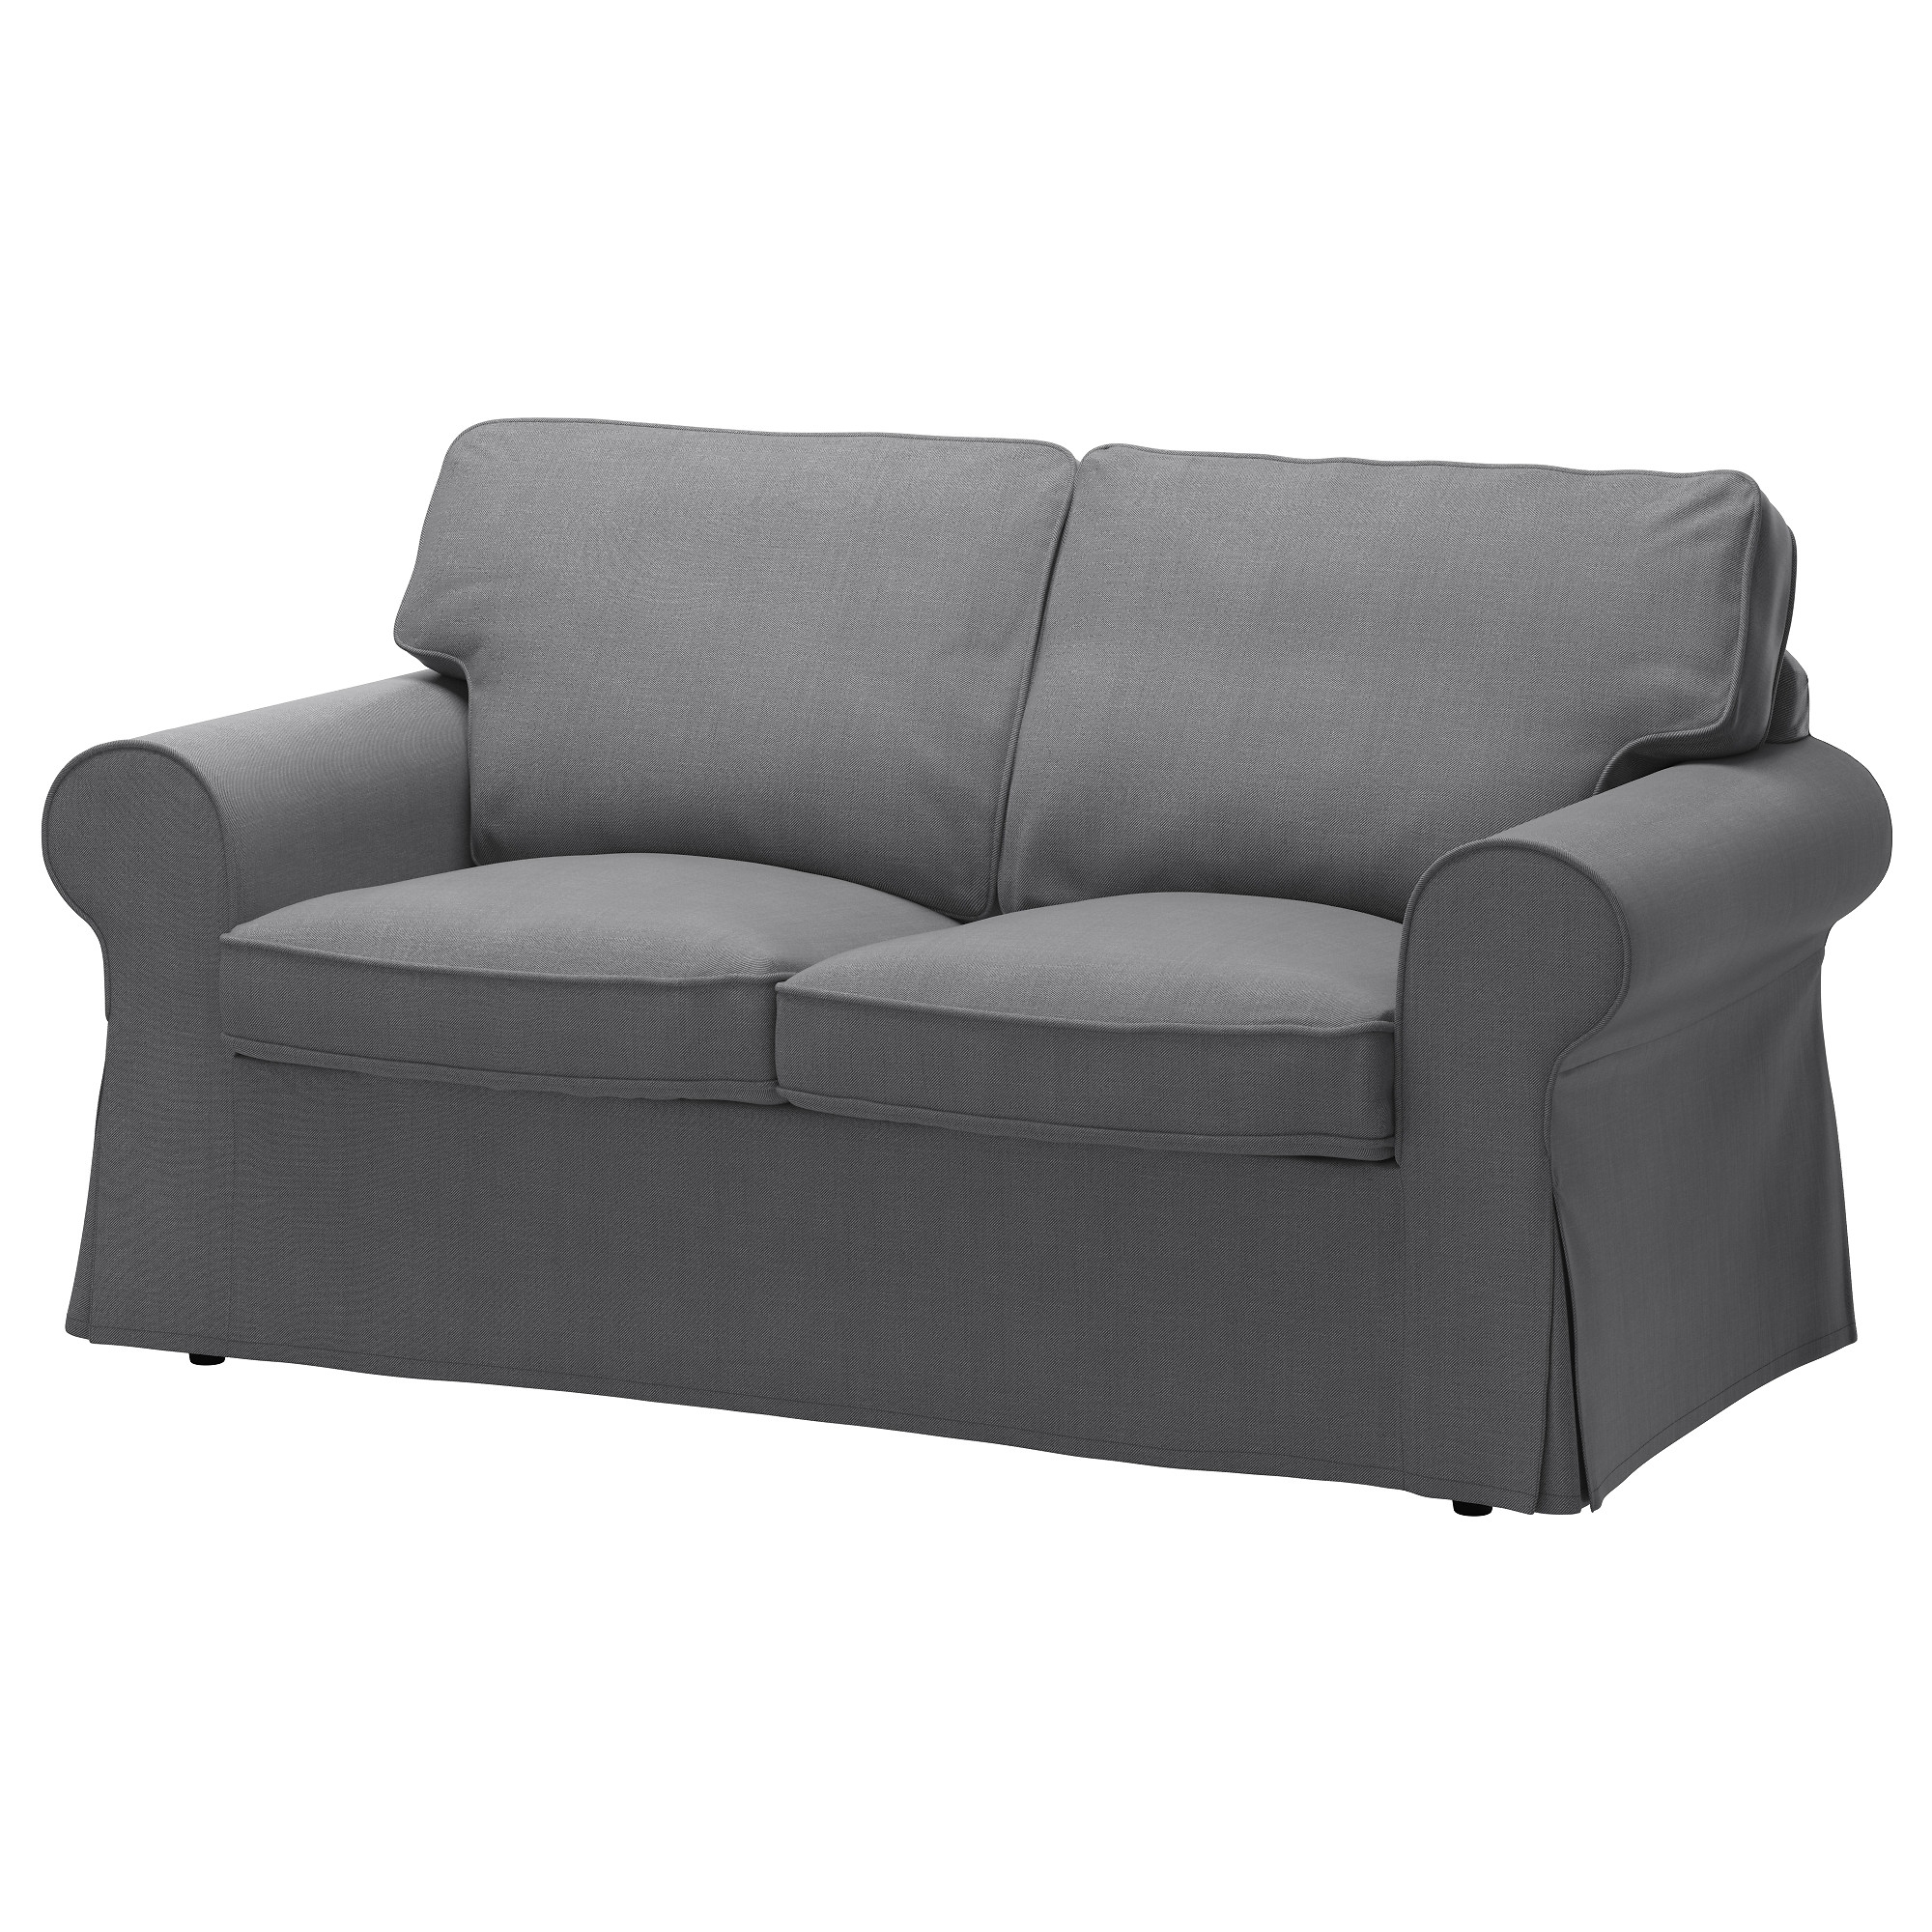 Ektorp   Ikea Throughout Sofas With Removable Cover (Photo 9 of 10)